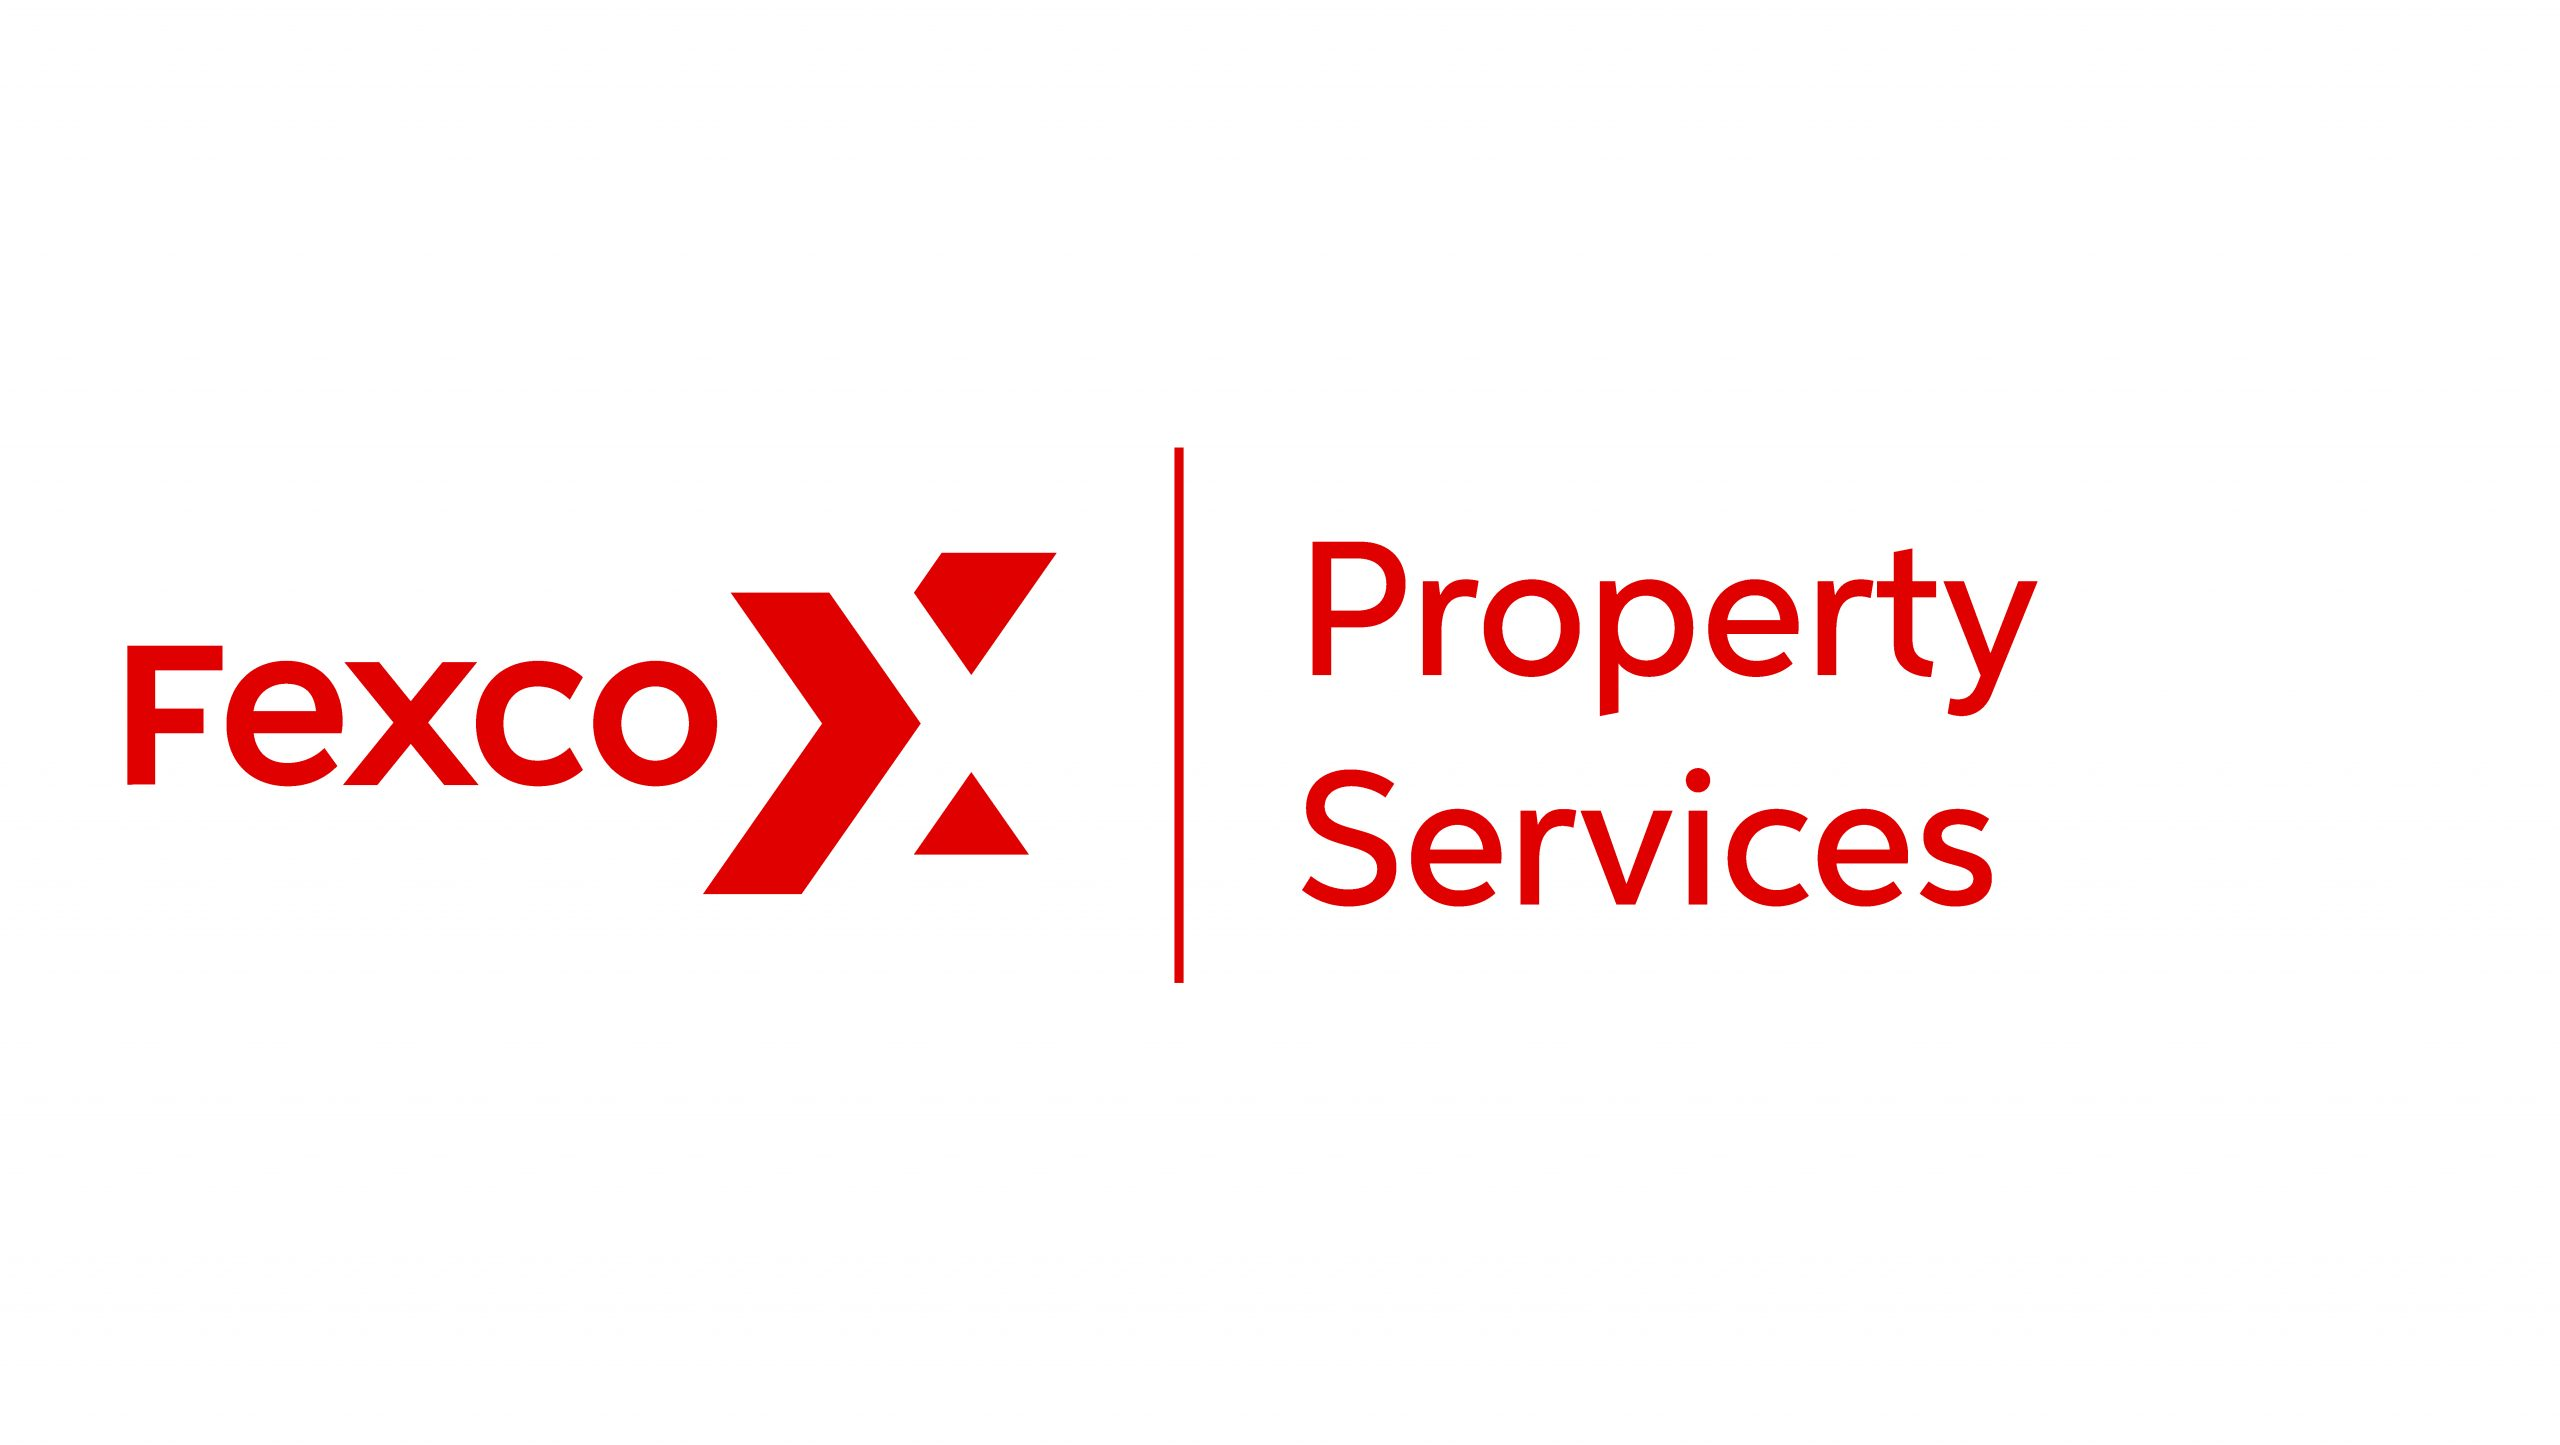 We're delighted to announce our two winners of the Property Hero Award 2020